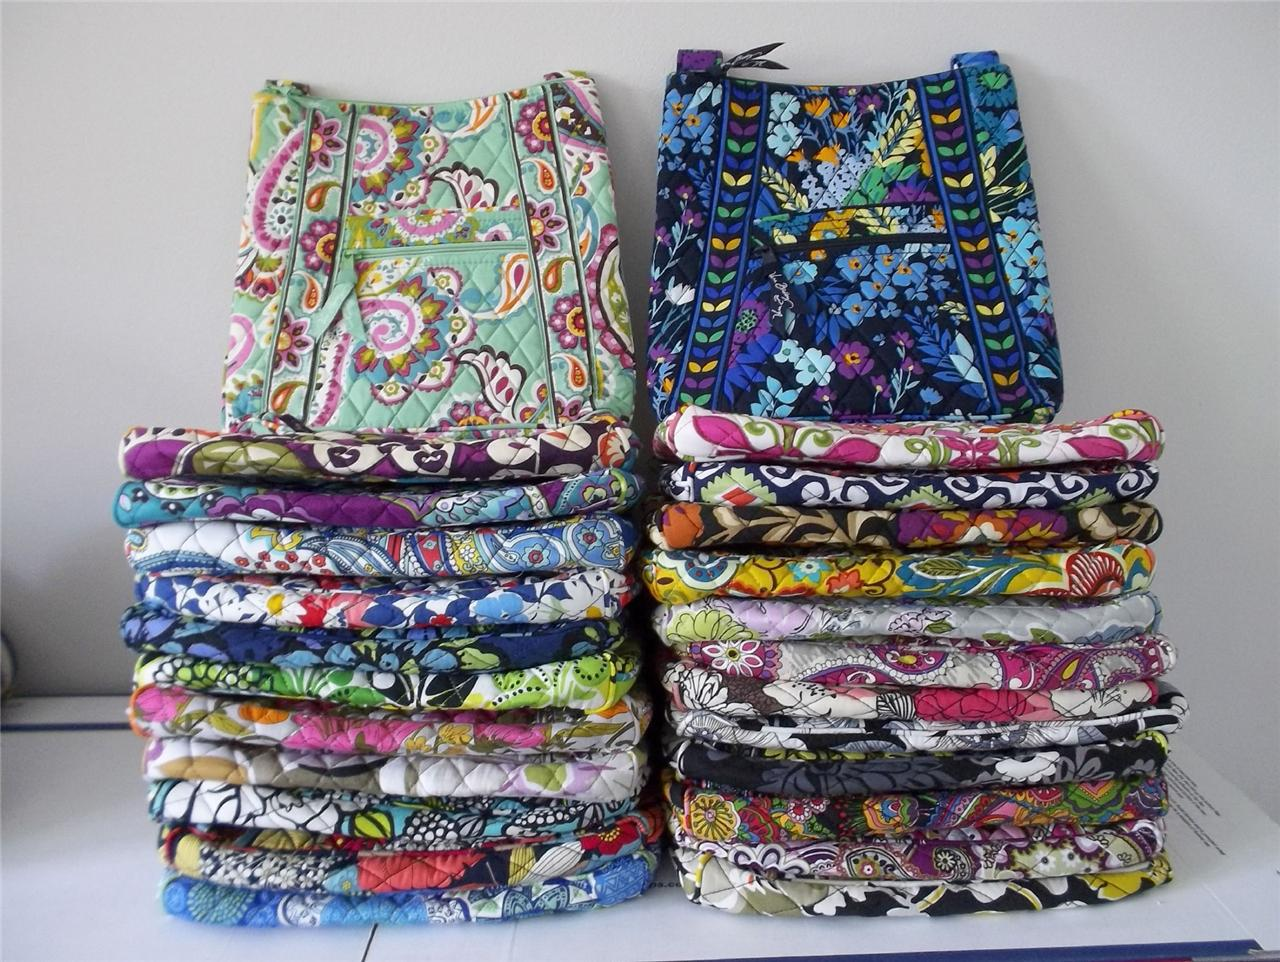 NWT-New-Vera-Bradley-Large-Hipster-Messenger-Bag-In-24-Patterns-to-Choose